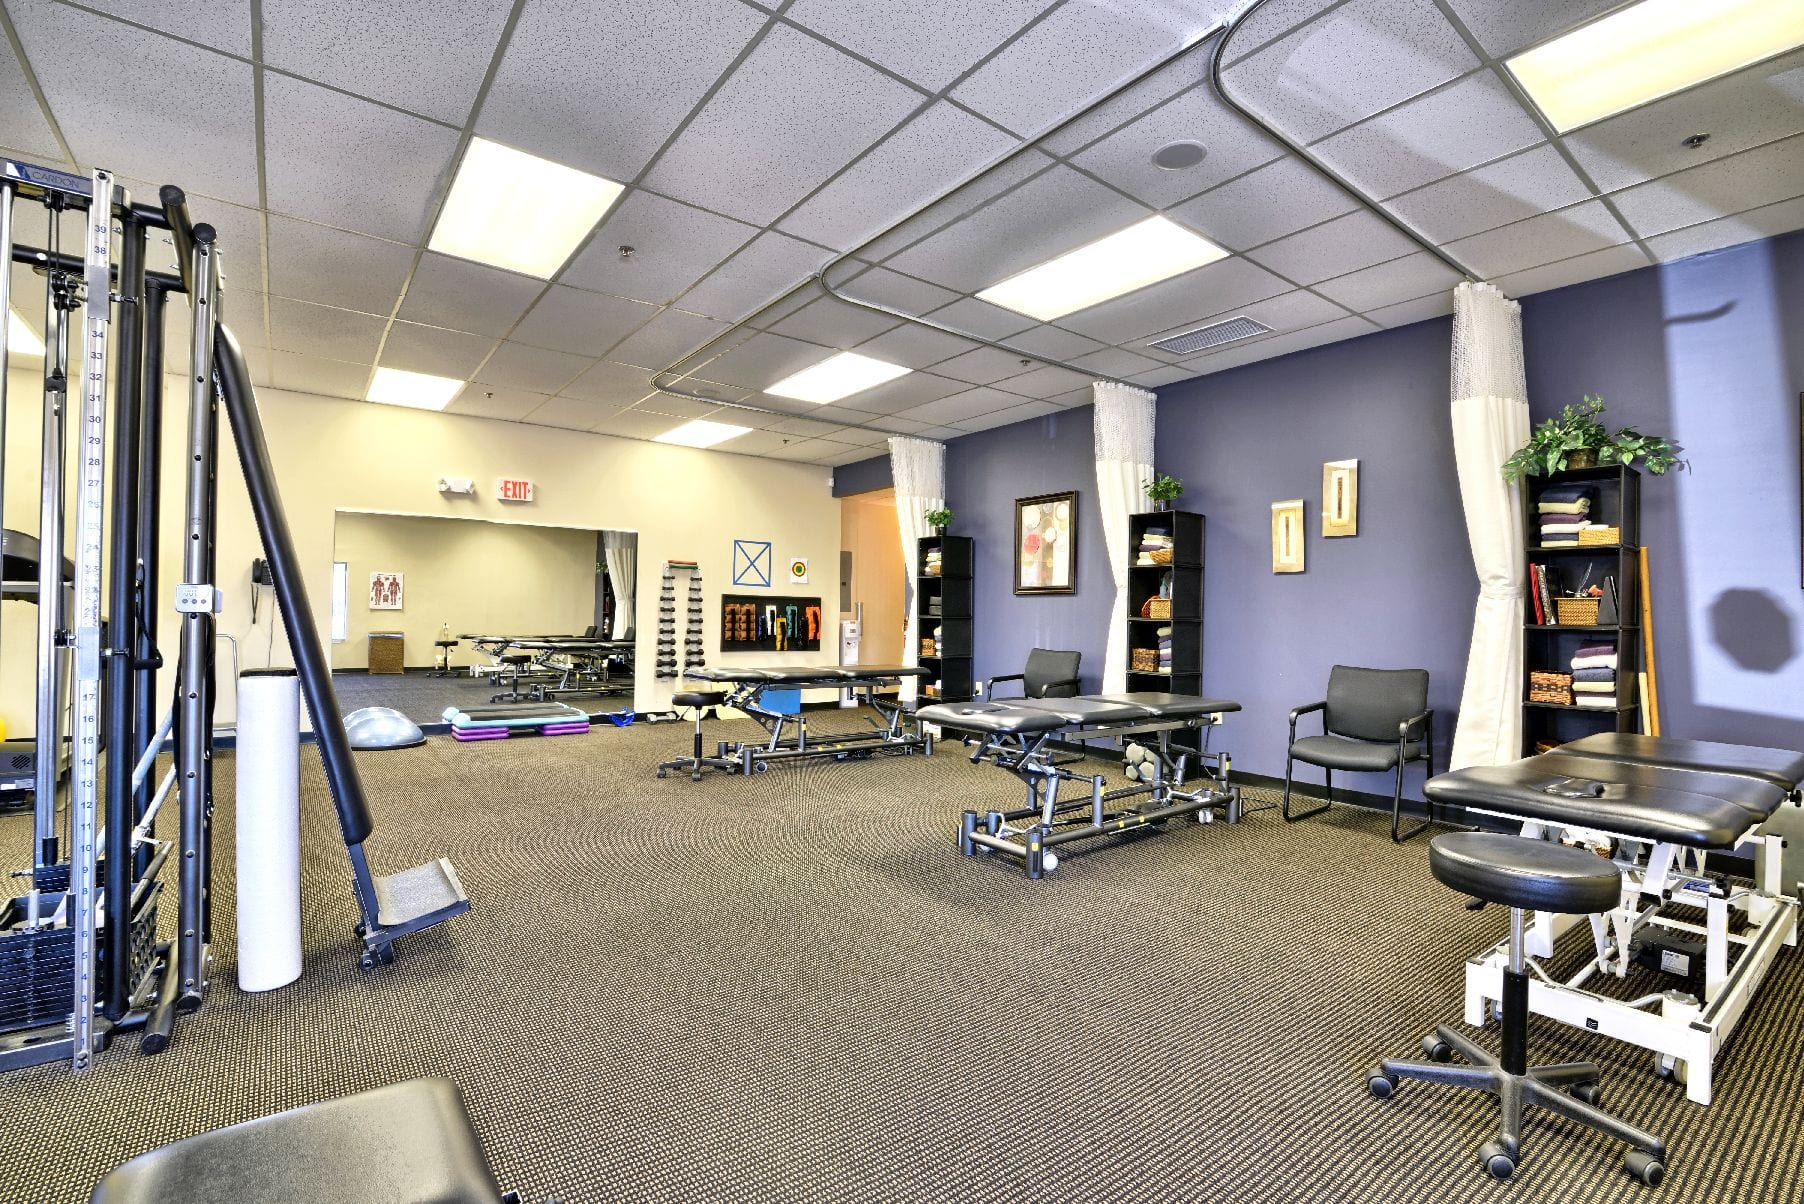 A photo of the interior of our physical therapy clinic in Middleton, Massachusetts. This photo shows stretch beds, weights, and a purple wall.